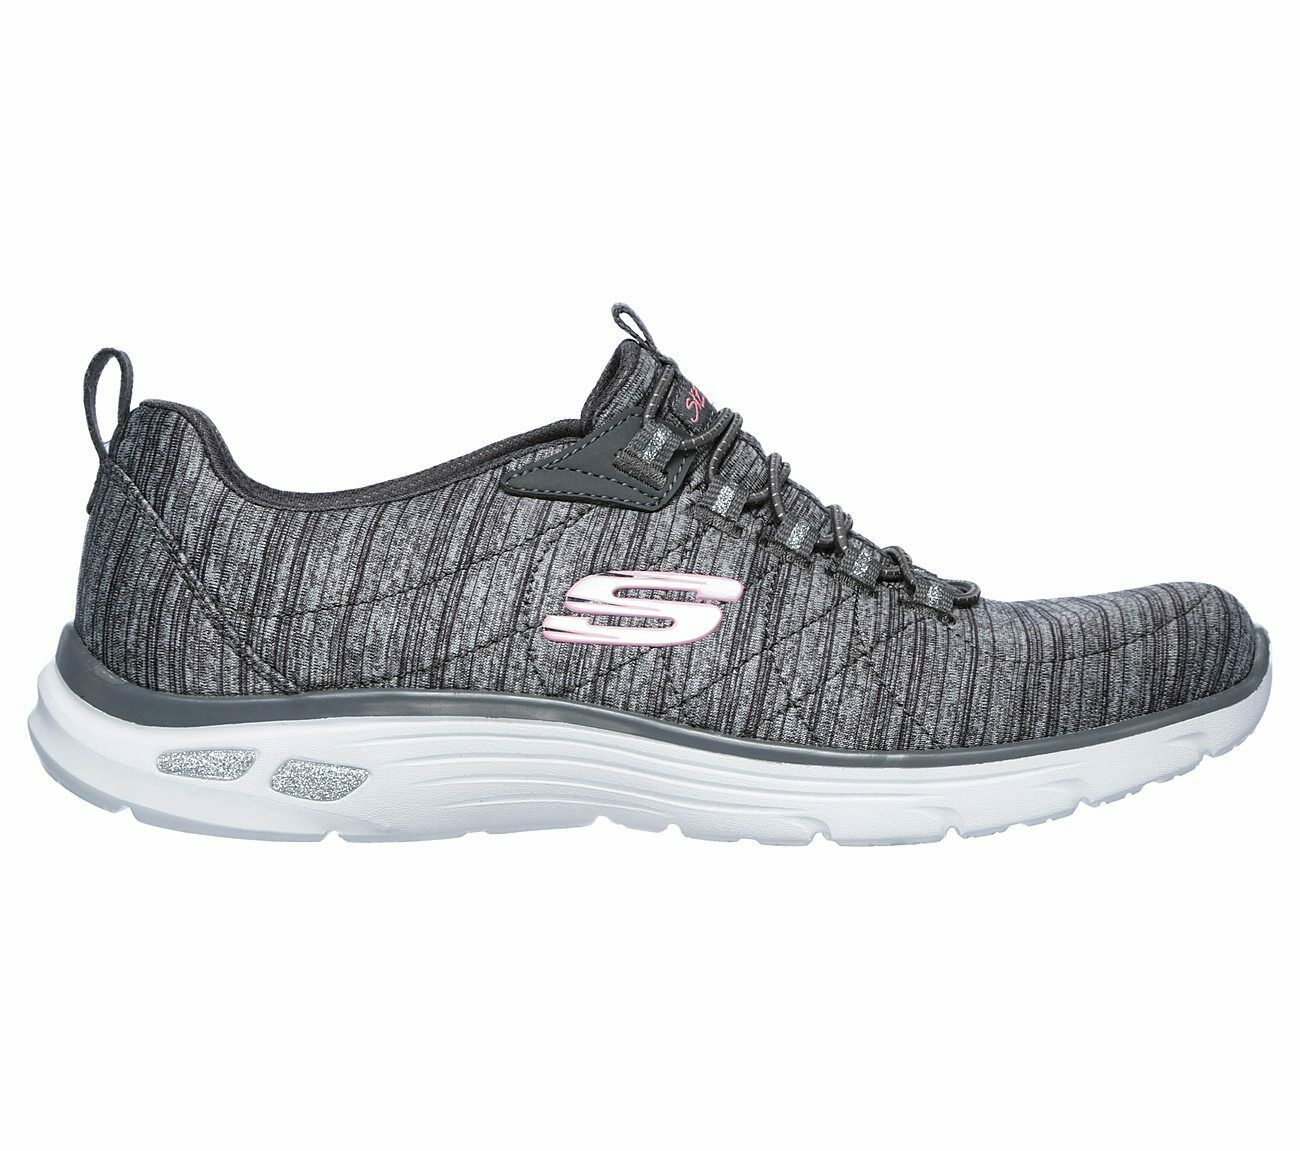 Skechers Relaxed Fit  Empire D'Lux Trainers Sporty Striped schuhe daSie 12820